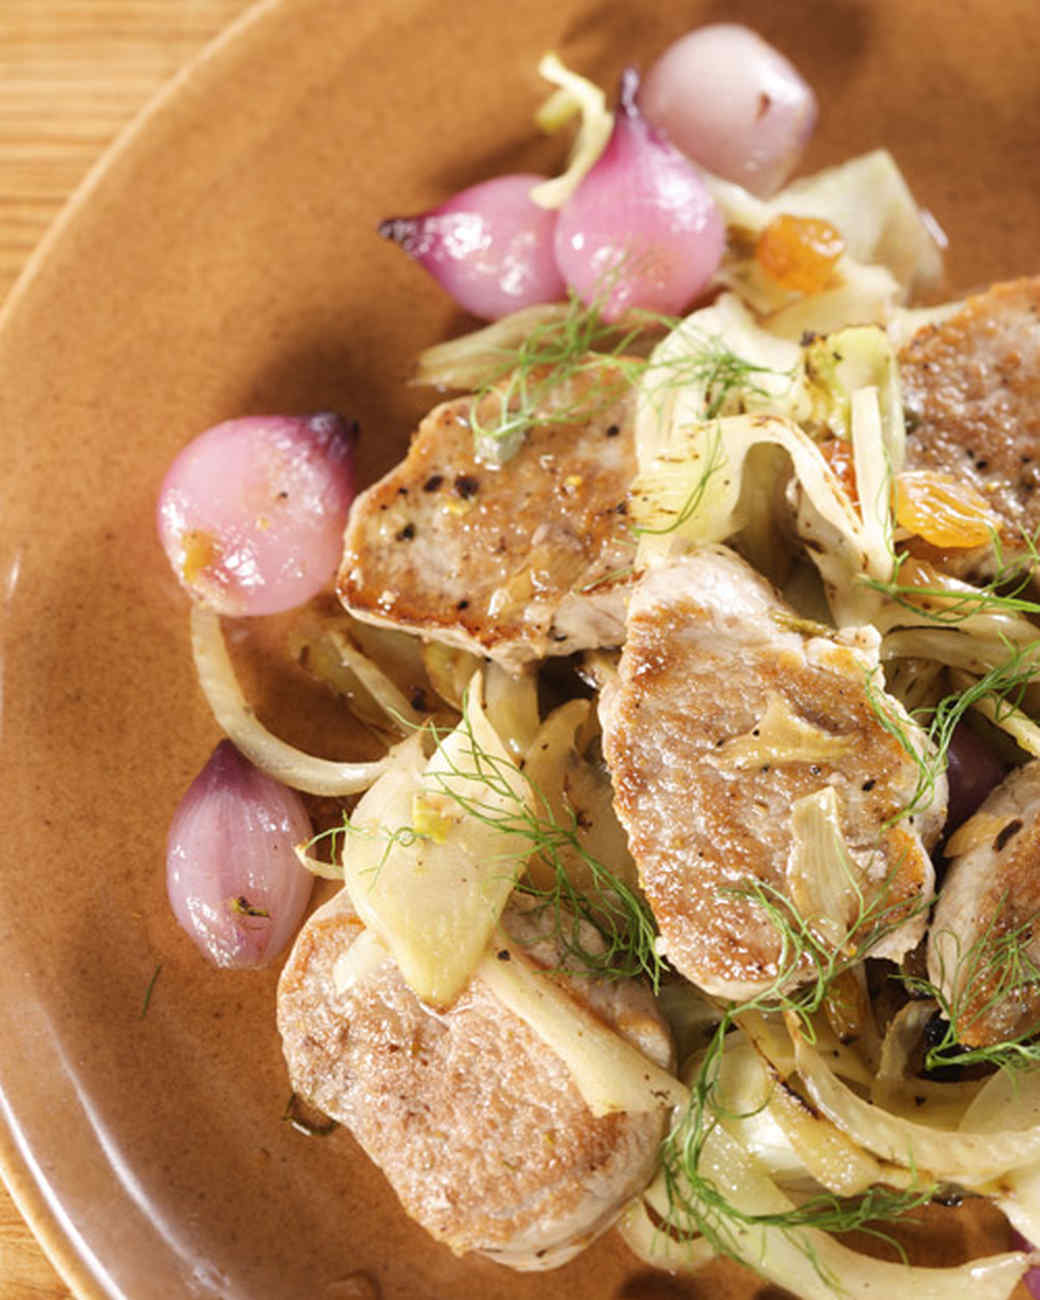 Pork Tenderloin with Sweet and Sour Onions, Golden Raisins, and Capers